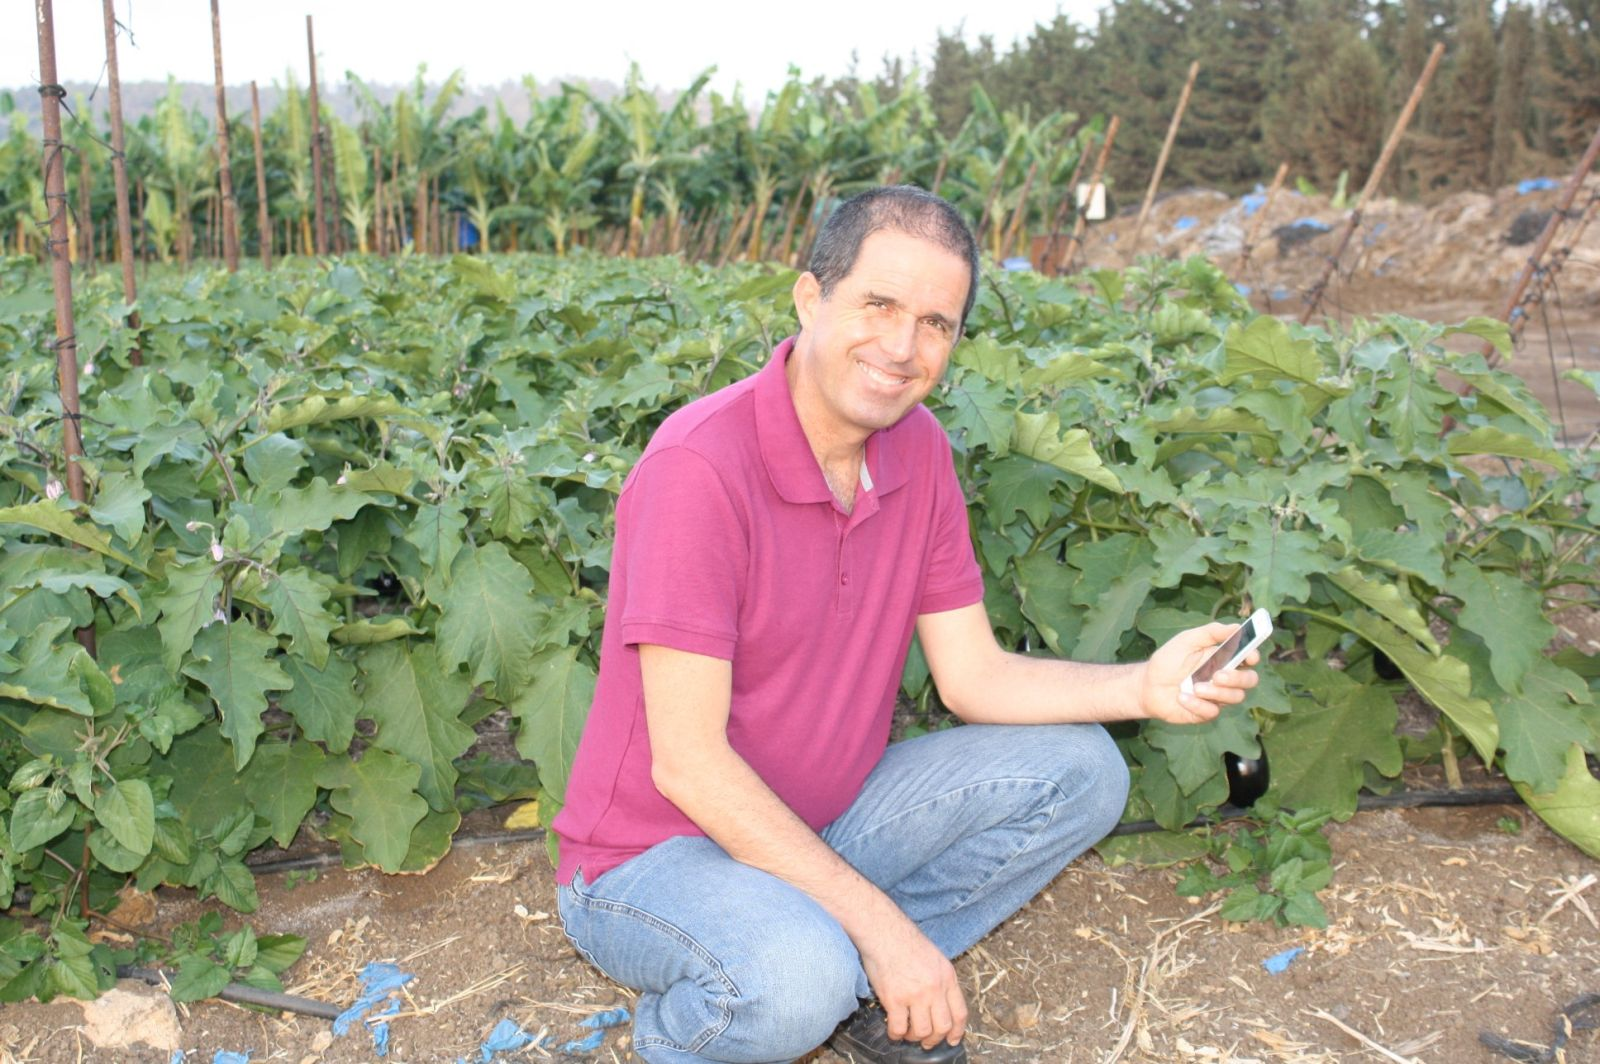 CropX CEO Isaac Bentwich in the field. Photo courtesy of CropX